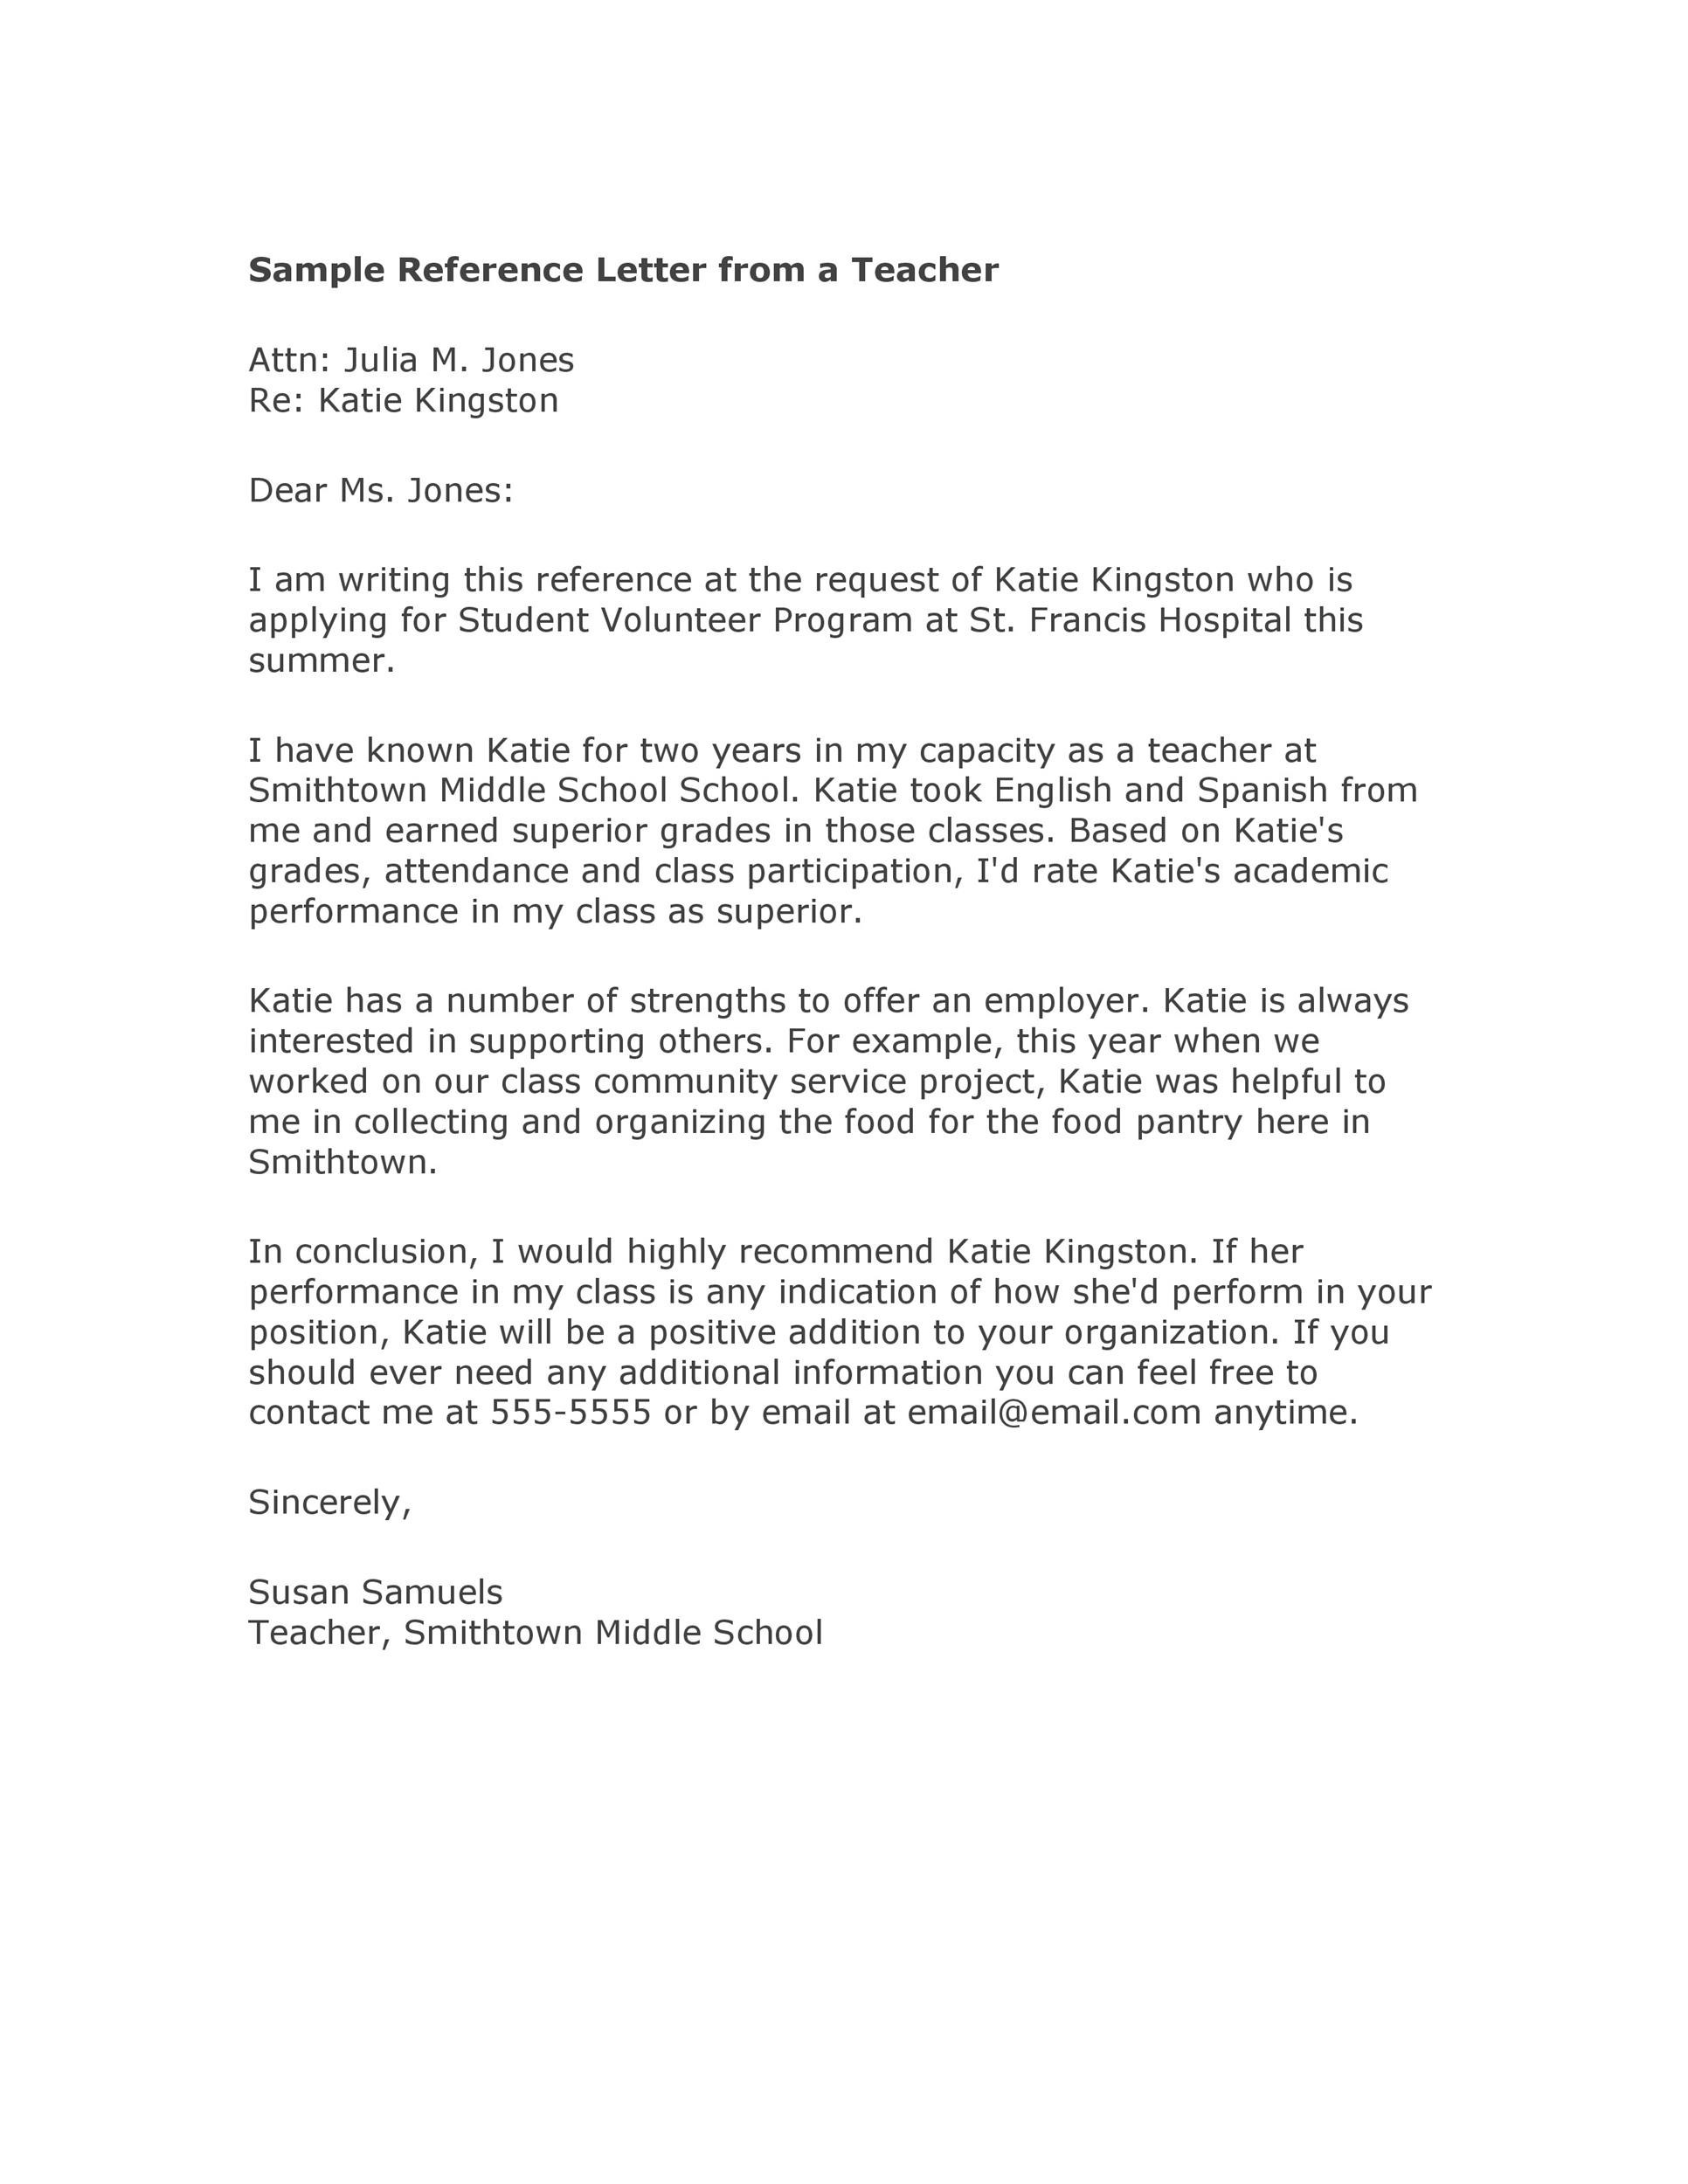 Recommendation-Letter-From-Teacher-Template-01 Teachers Letters Of Reference For College Application Form on